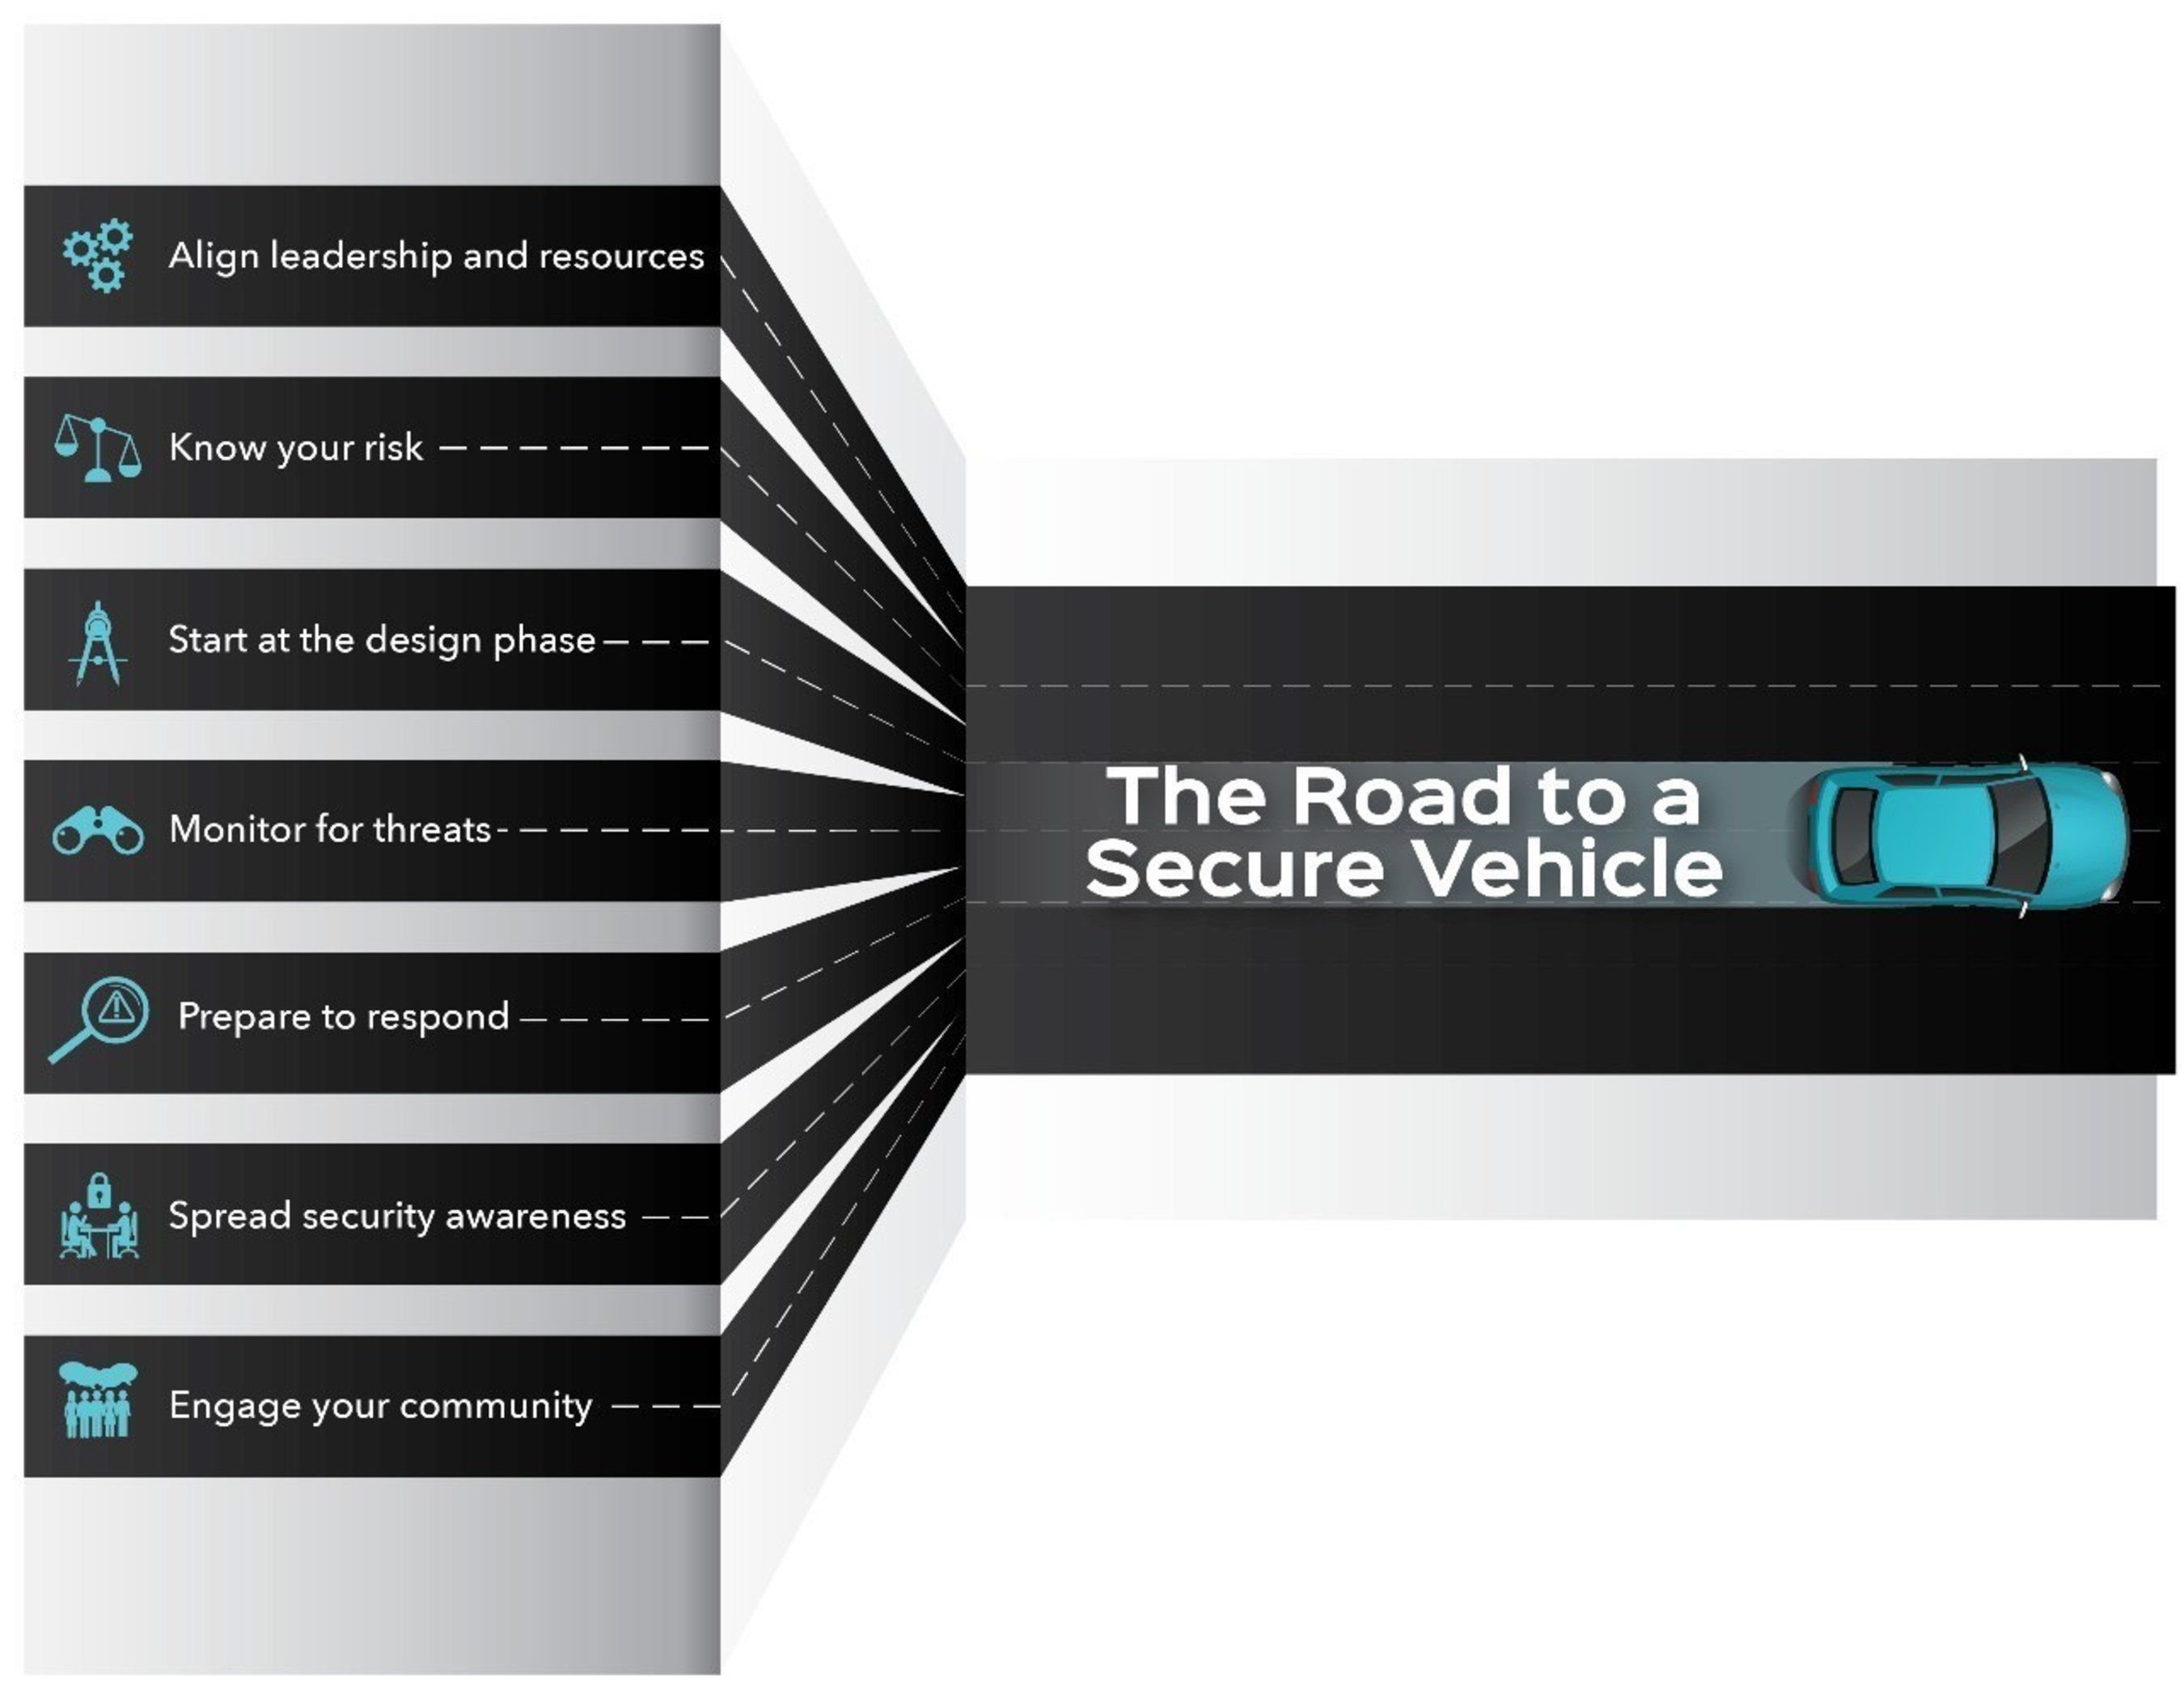 Vehicle Cybersecurity Best Practices - The Road to a Secure Vehicle